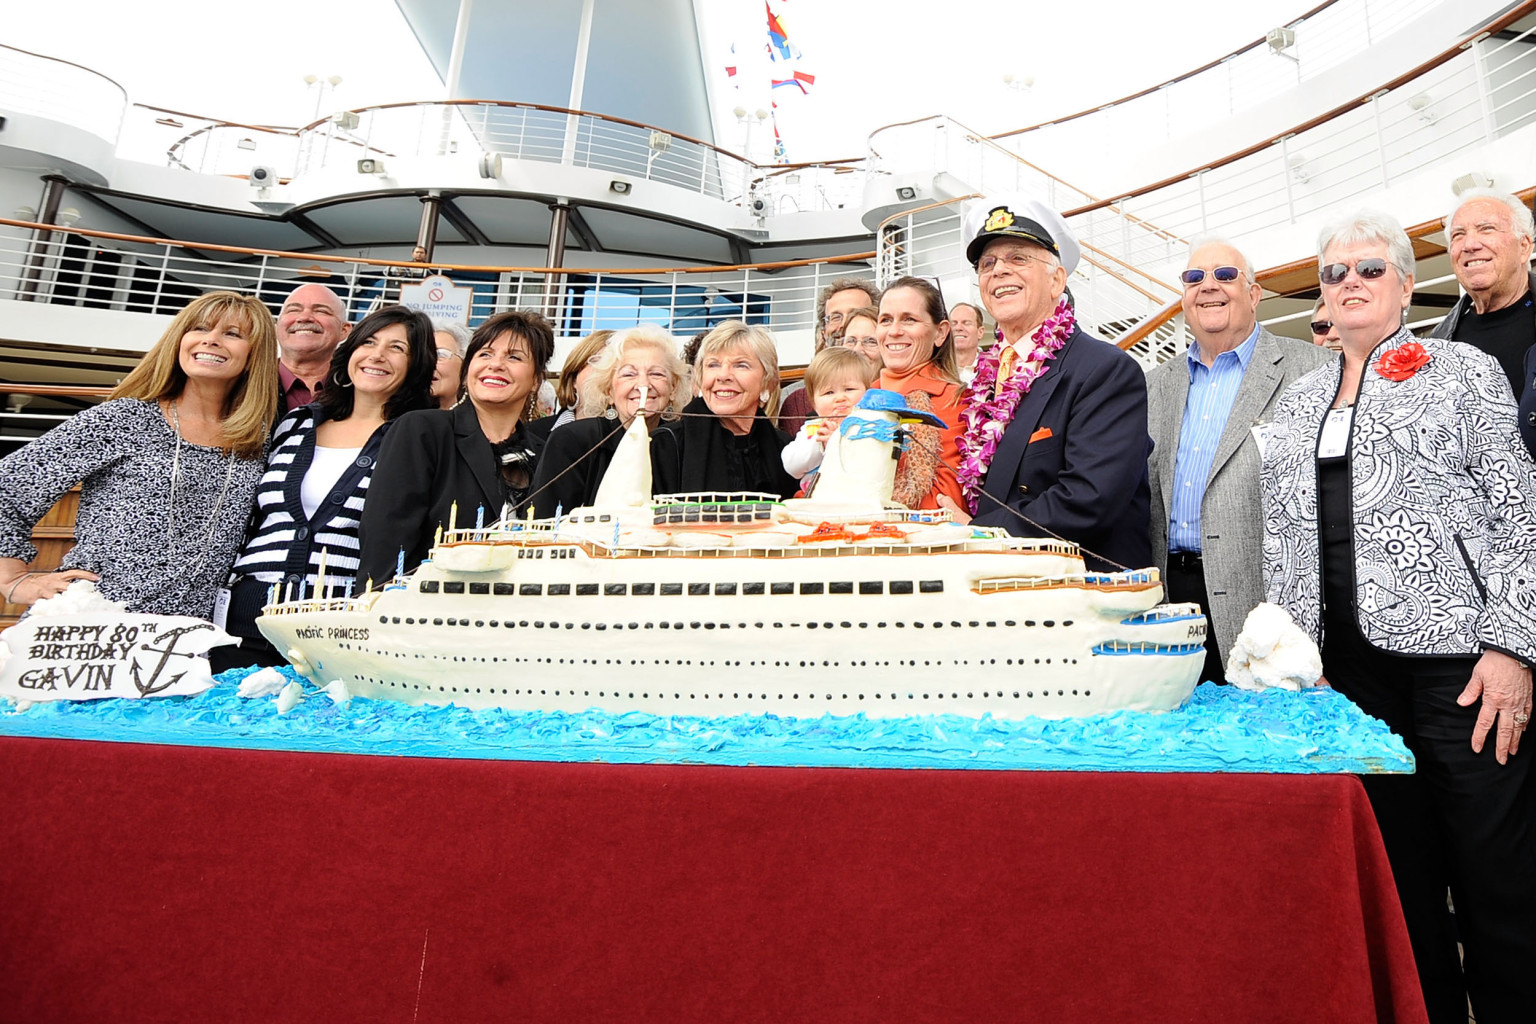 The Love Boat Cruise Ship Sails Its Final Voyage HuffPost - Love boat cruise ship